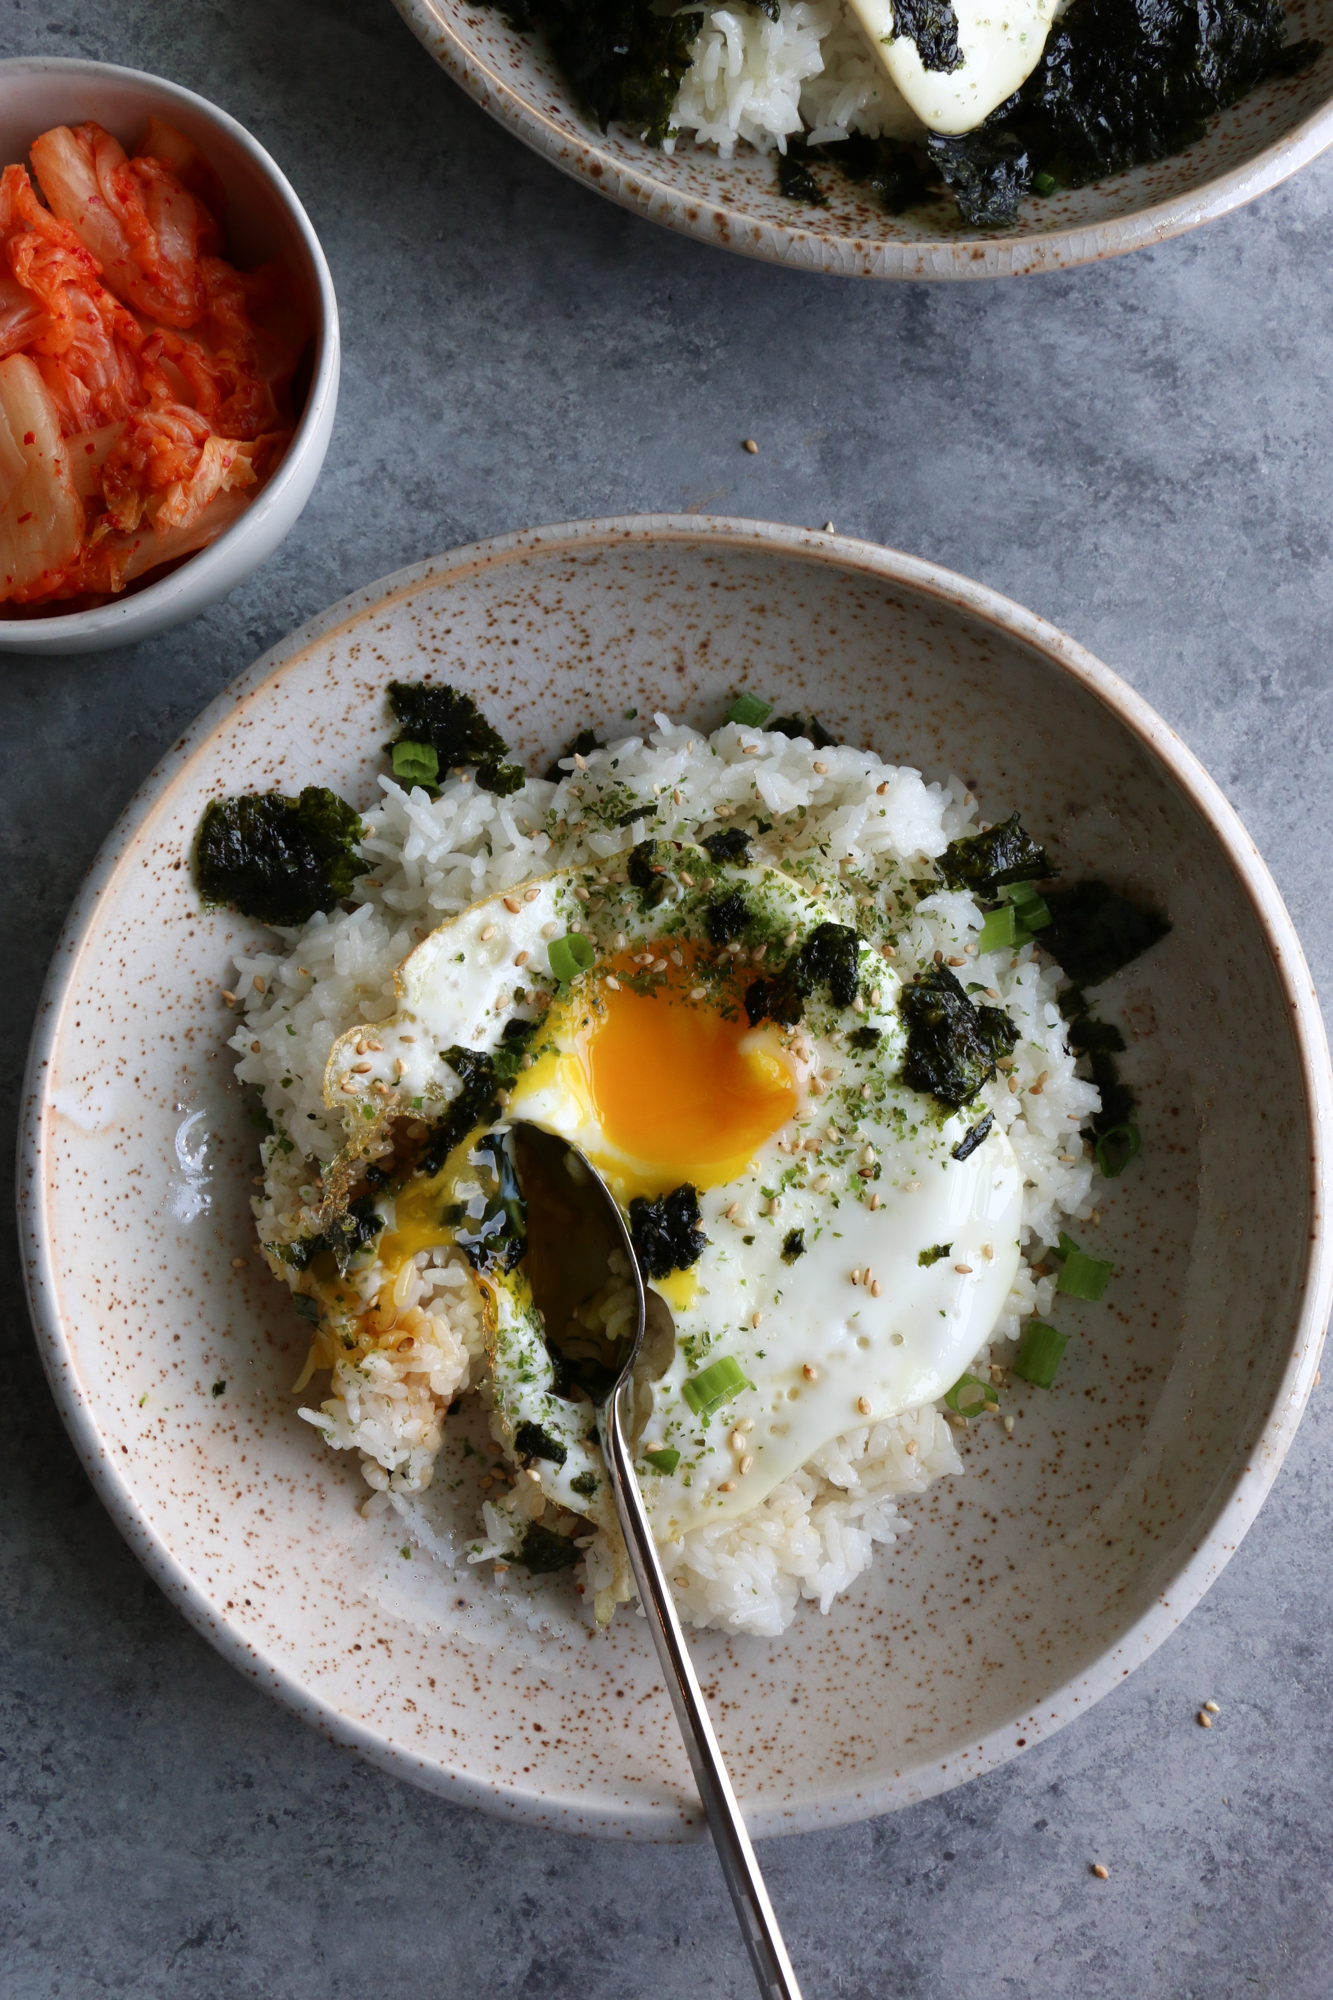 How To Make Korean Rice with Egg. So easy to make and so delicious! Sprinkle some furikake over the top, and mix in the egg!